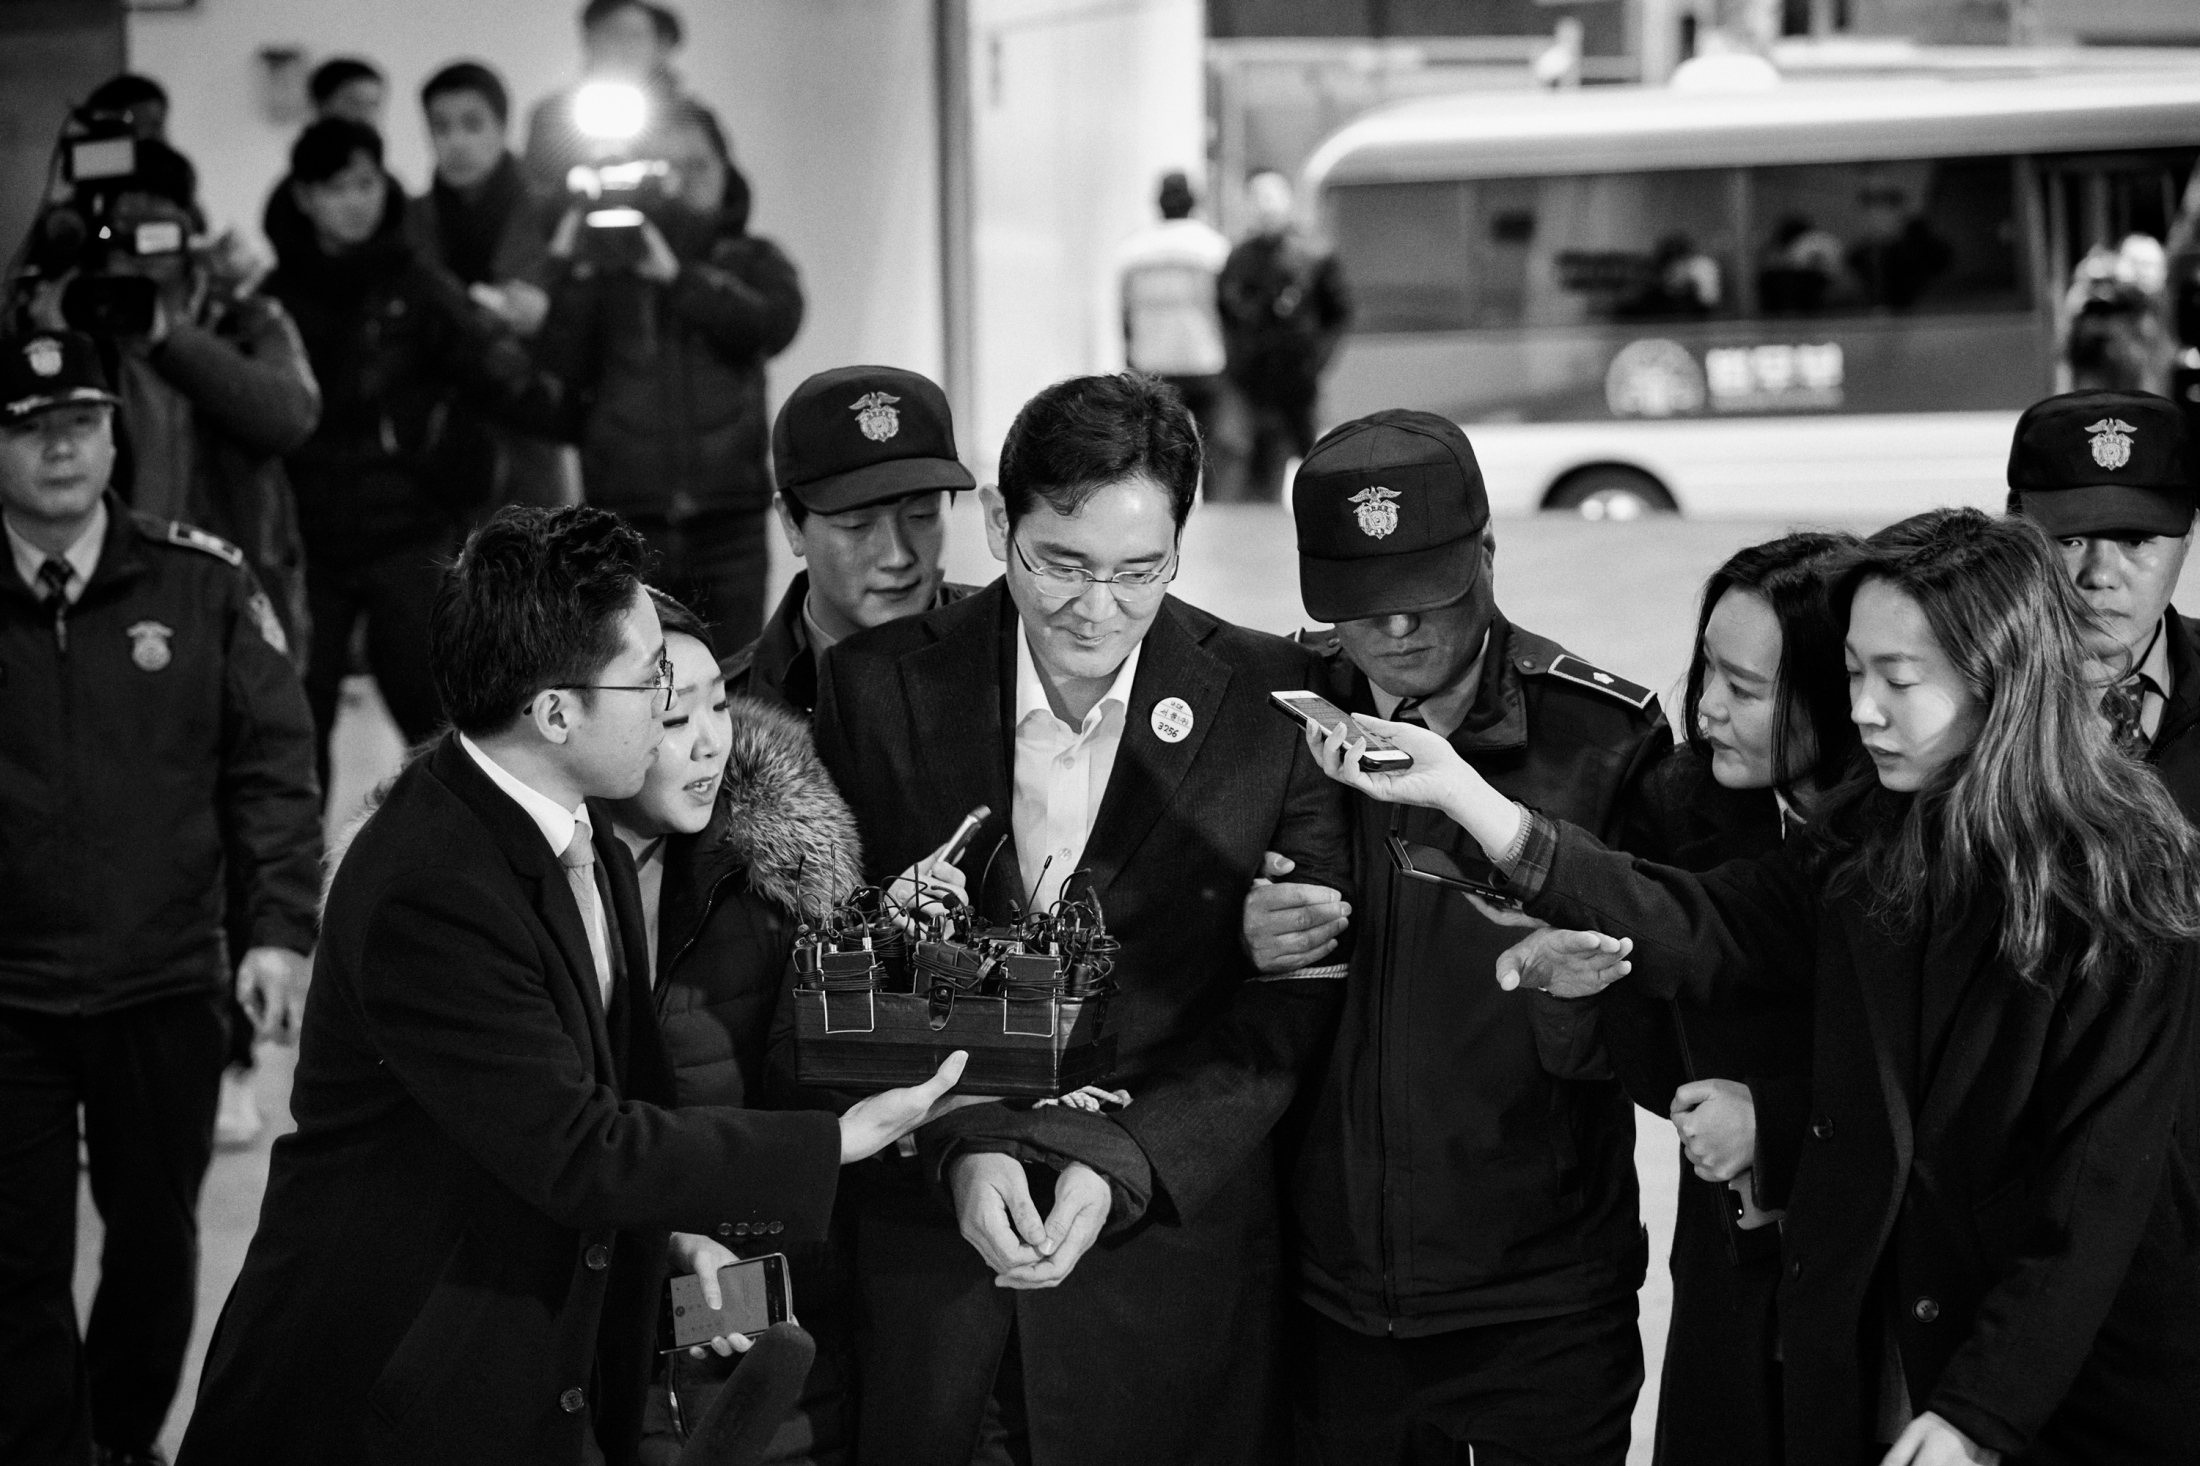 Lee Jae-yong, also known in the West as Jay Y. Lee, the vice chairman and the heir of Samsung group, is taken to the special prosecutors' office in Gangnam, Seoul for questioning on Sunday morning. Lee was arrested on Feb. 17, 2017 for his alleged role in the corruption scandal which led to the impeachment of President Park Guen-hye. Lee was accused of bribery, embezzlement and hiding assets overseas and perjury by the special prosecutors' team which investigate the worst corruption scandal in South Korean history.